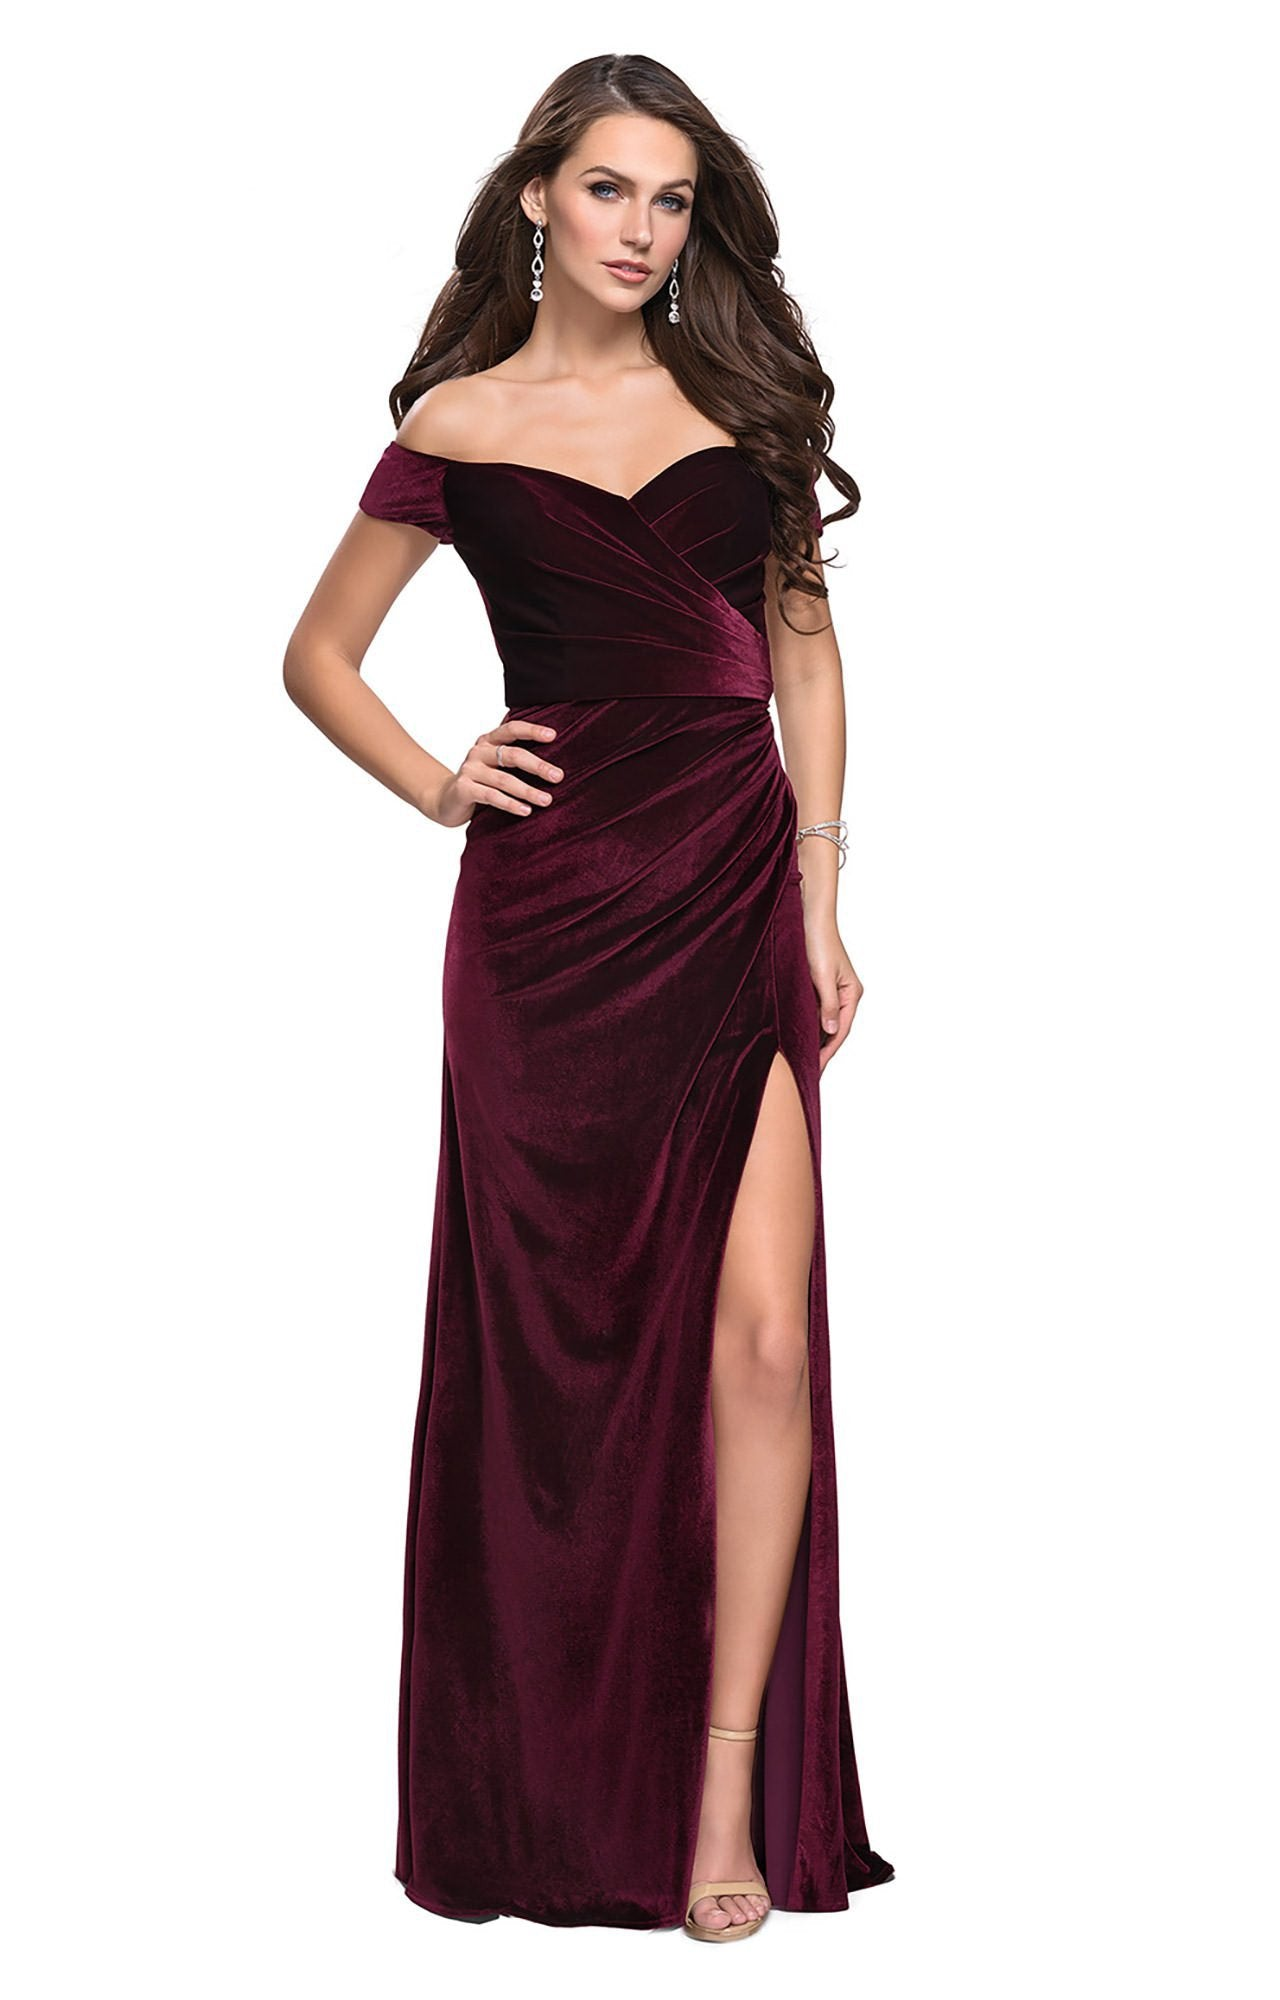 La Femme - Off-Shoulder Sheath Evening Gown with Slit 25213 In Red